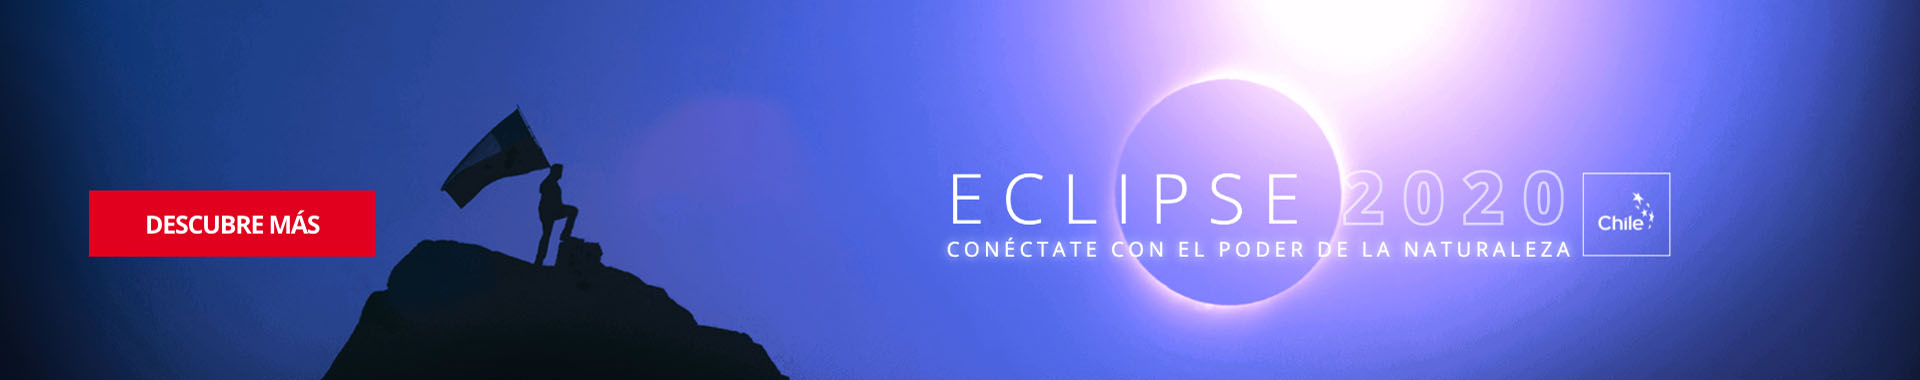 banner-chile-eclipse-2020.jpg